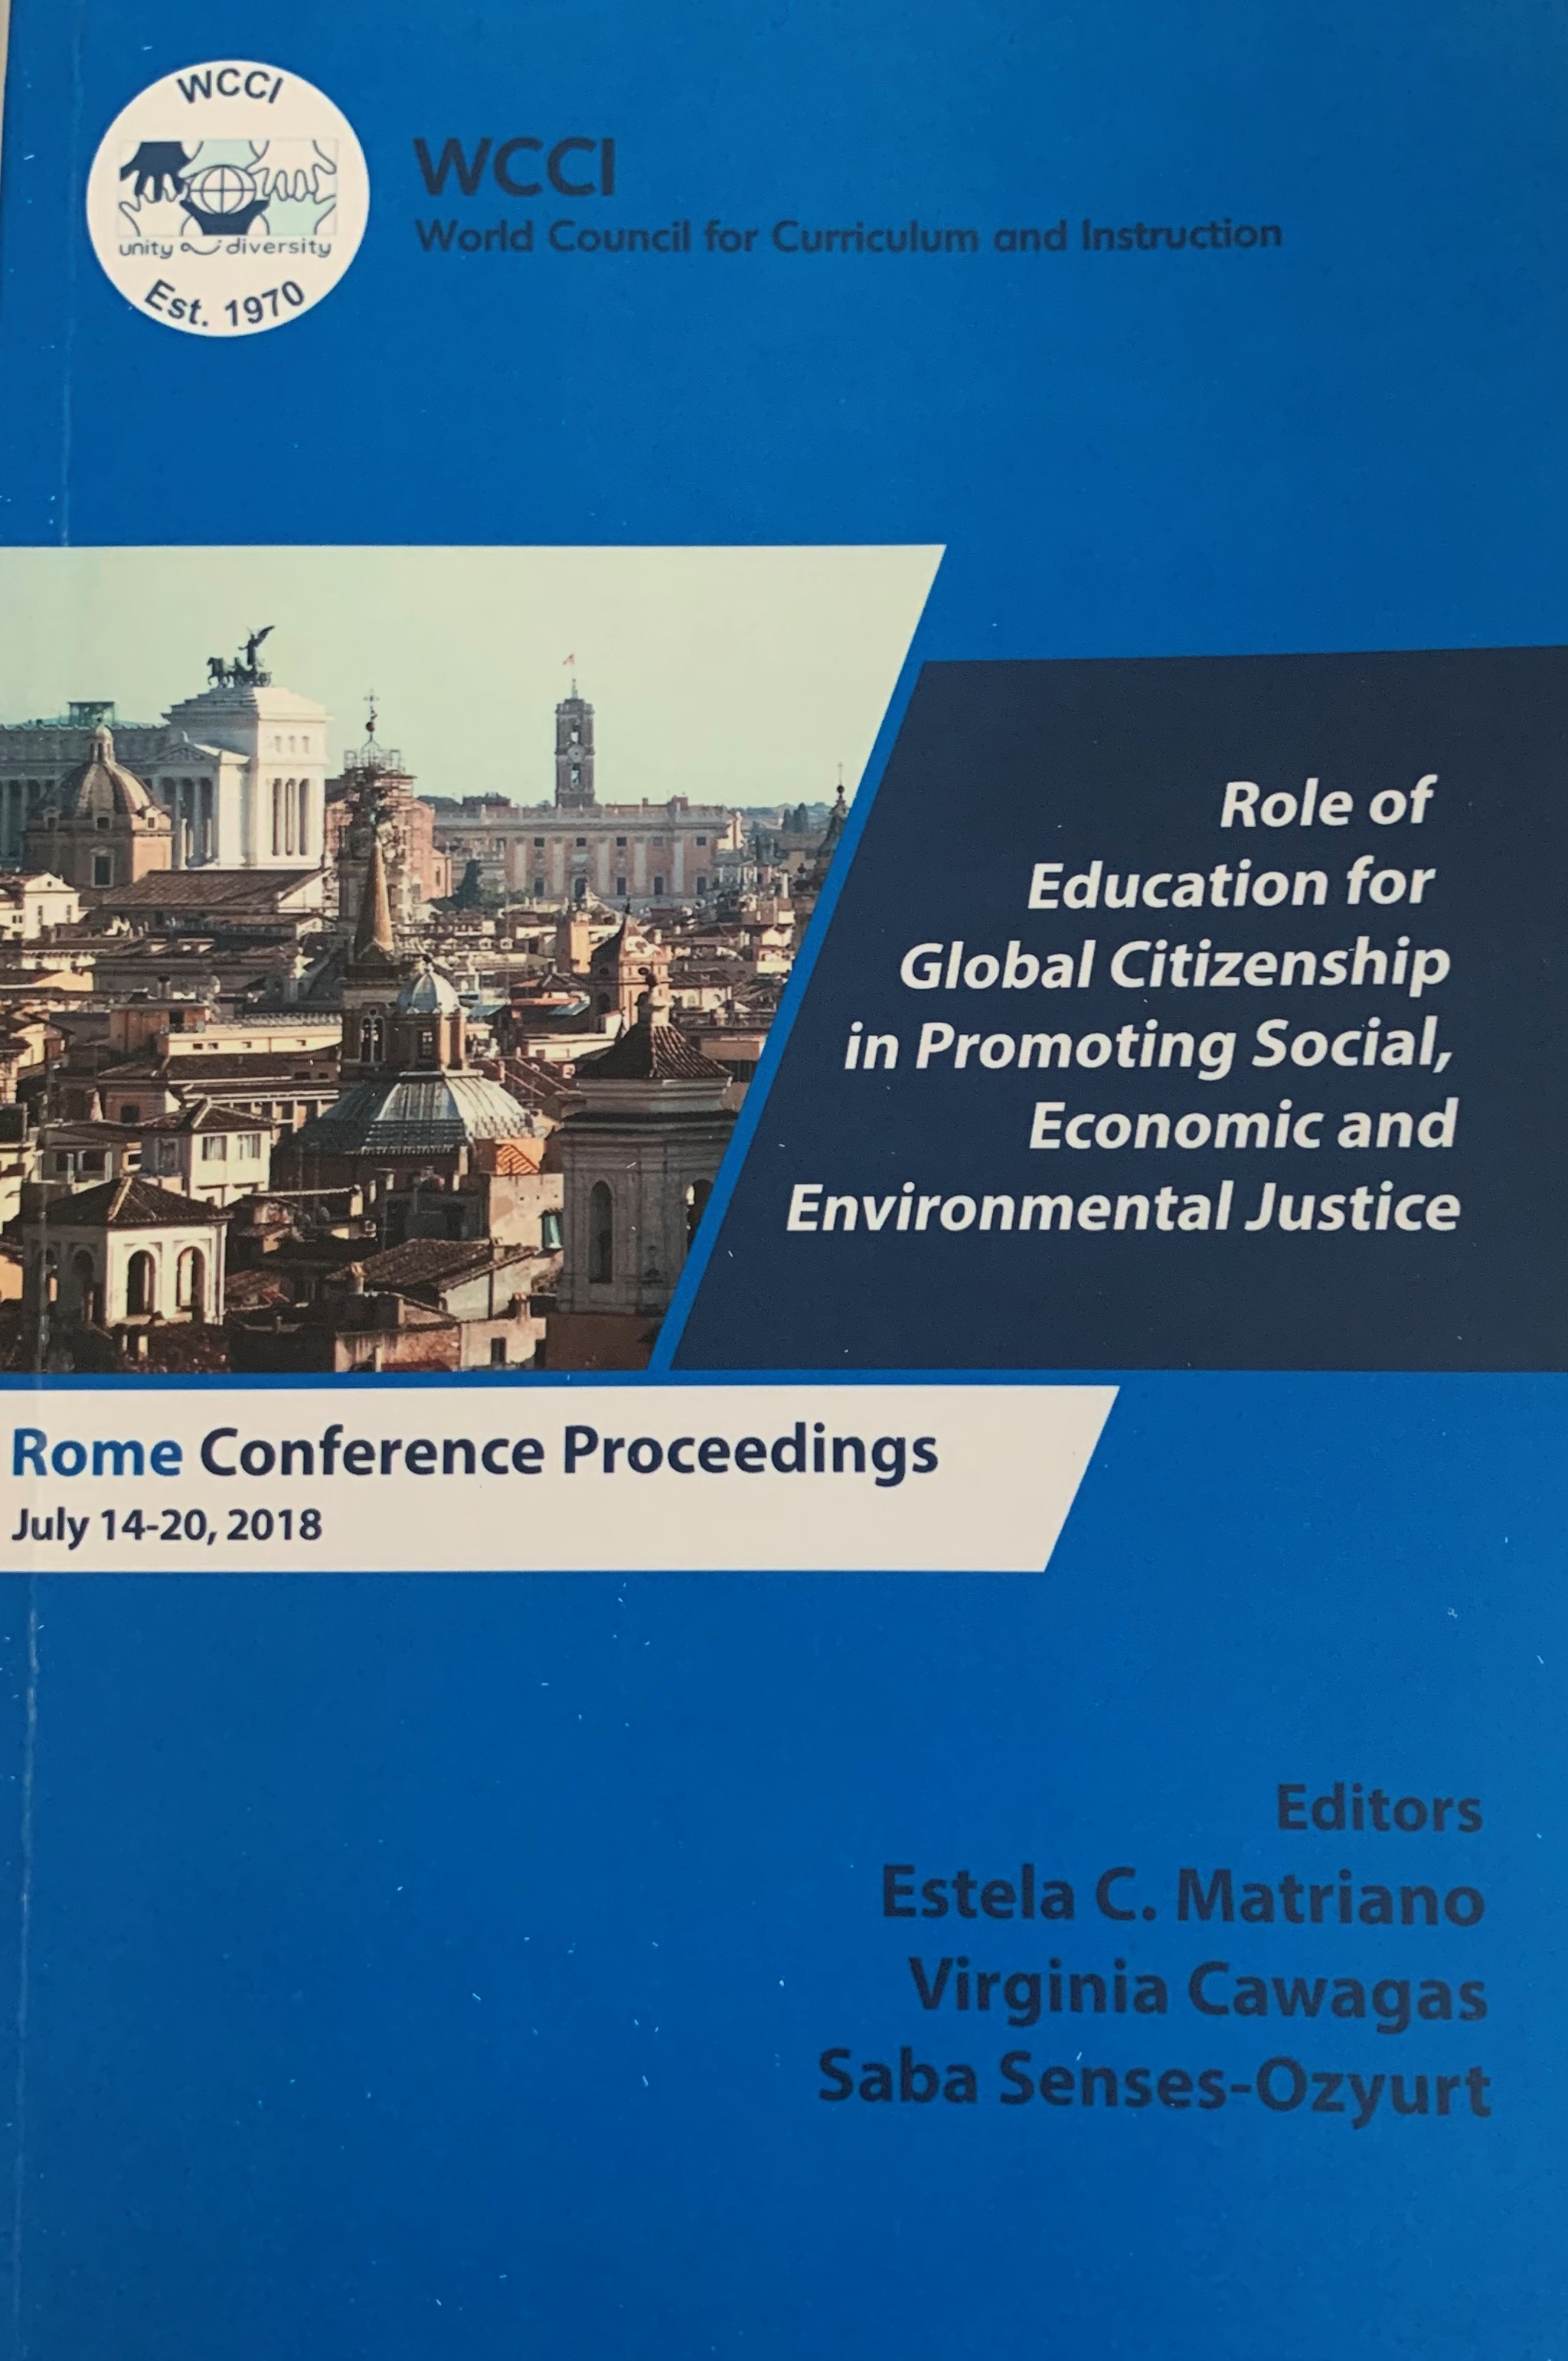 Rome conference proceedings